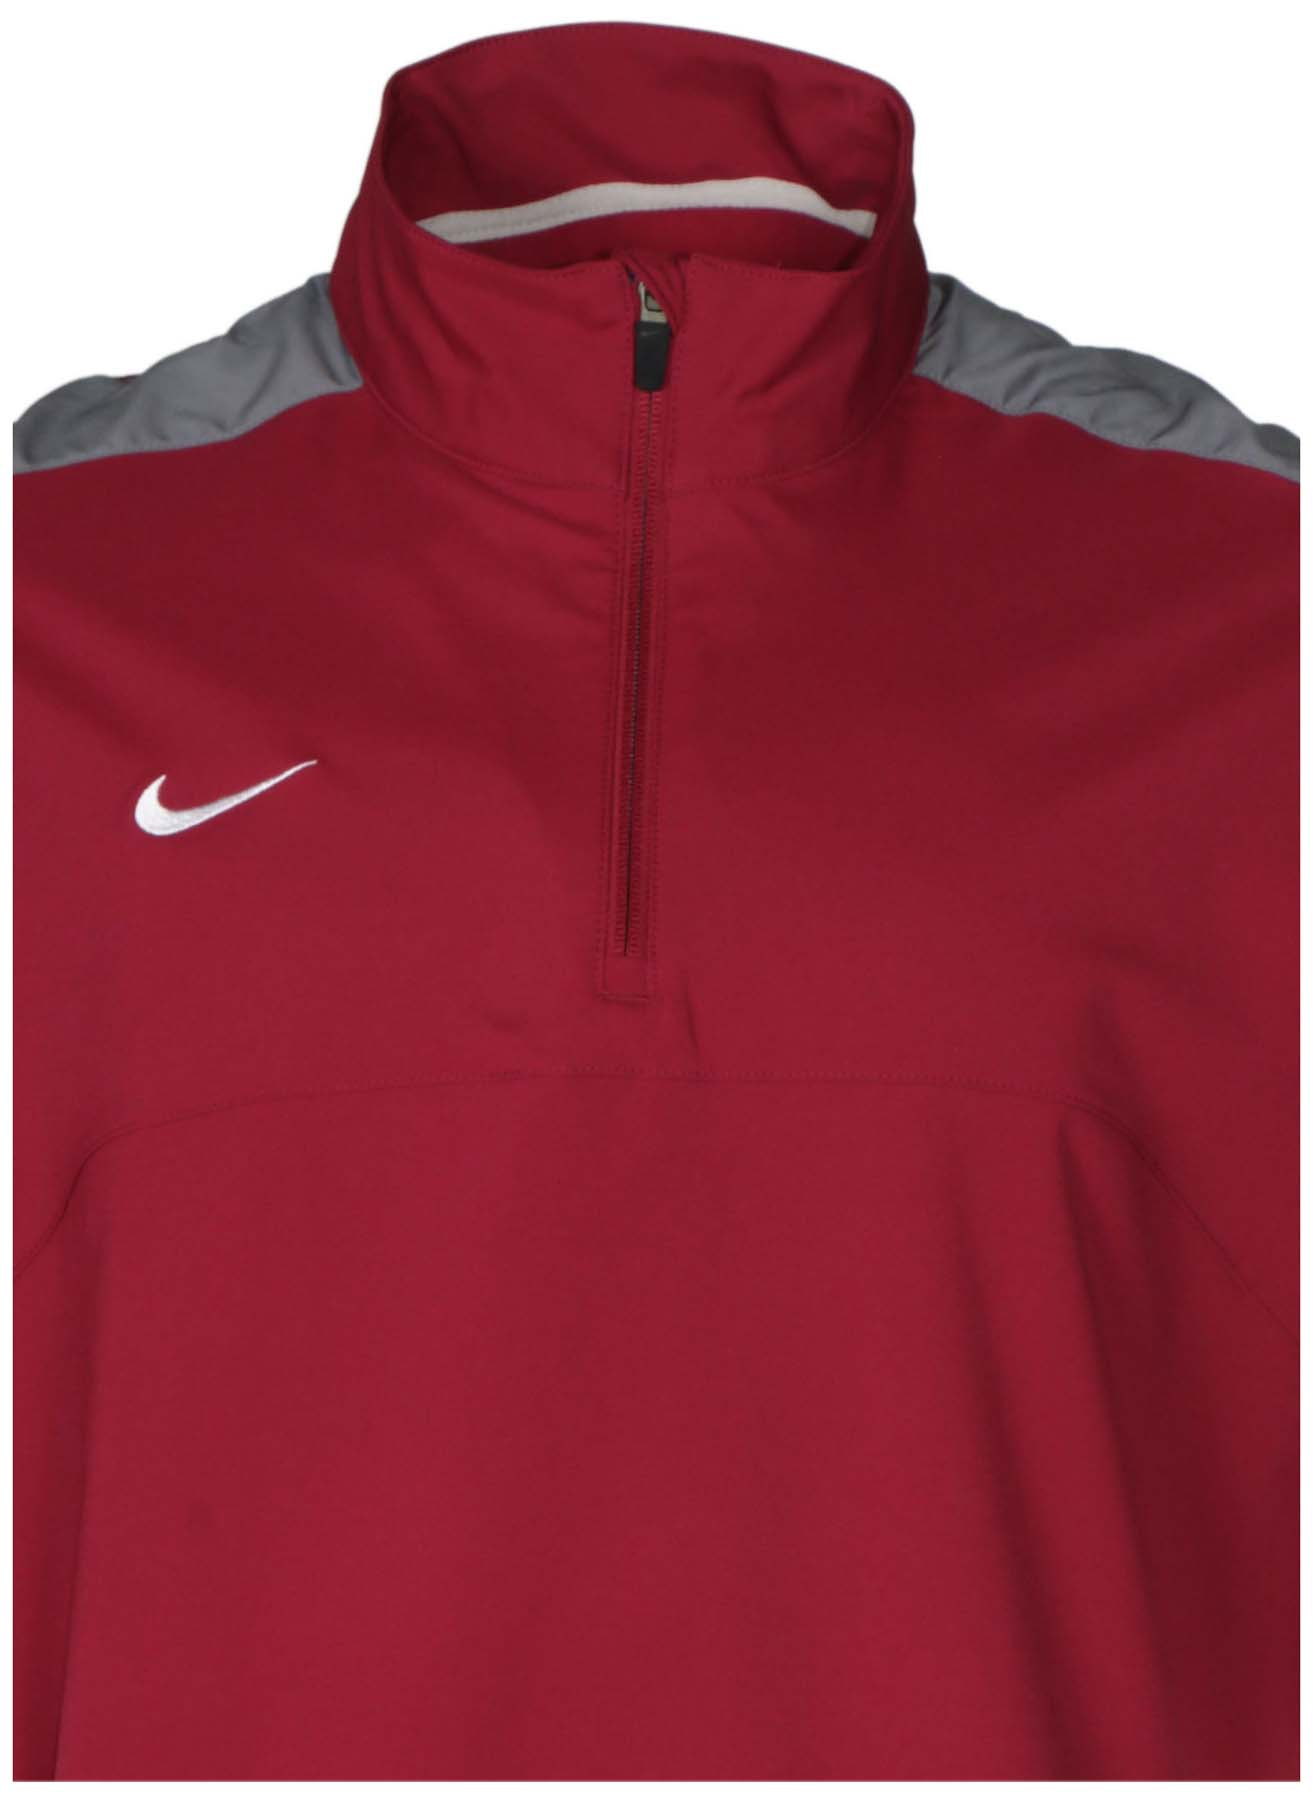 830e322b7a623 Nike Men s Dri-Fit 1 4 Zip Short Sleeve Training Jacket